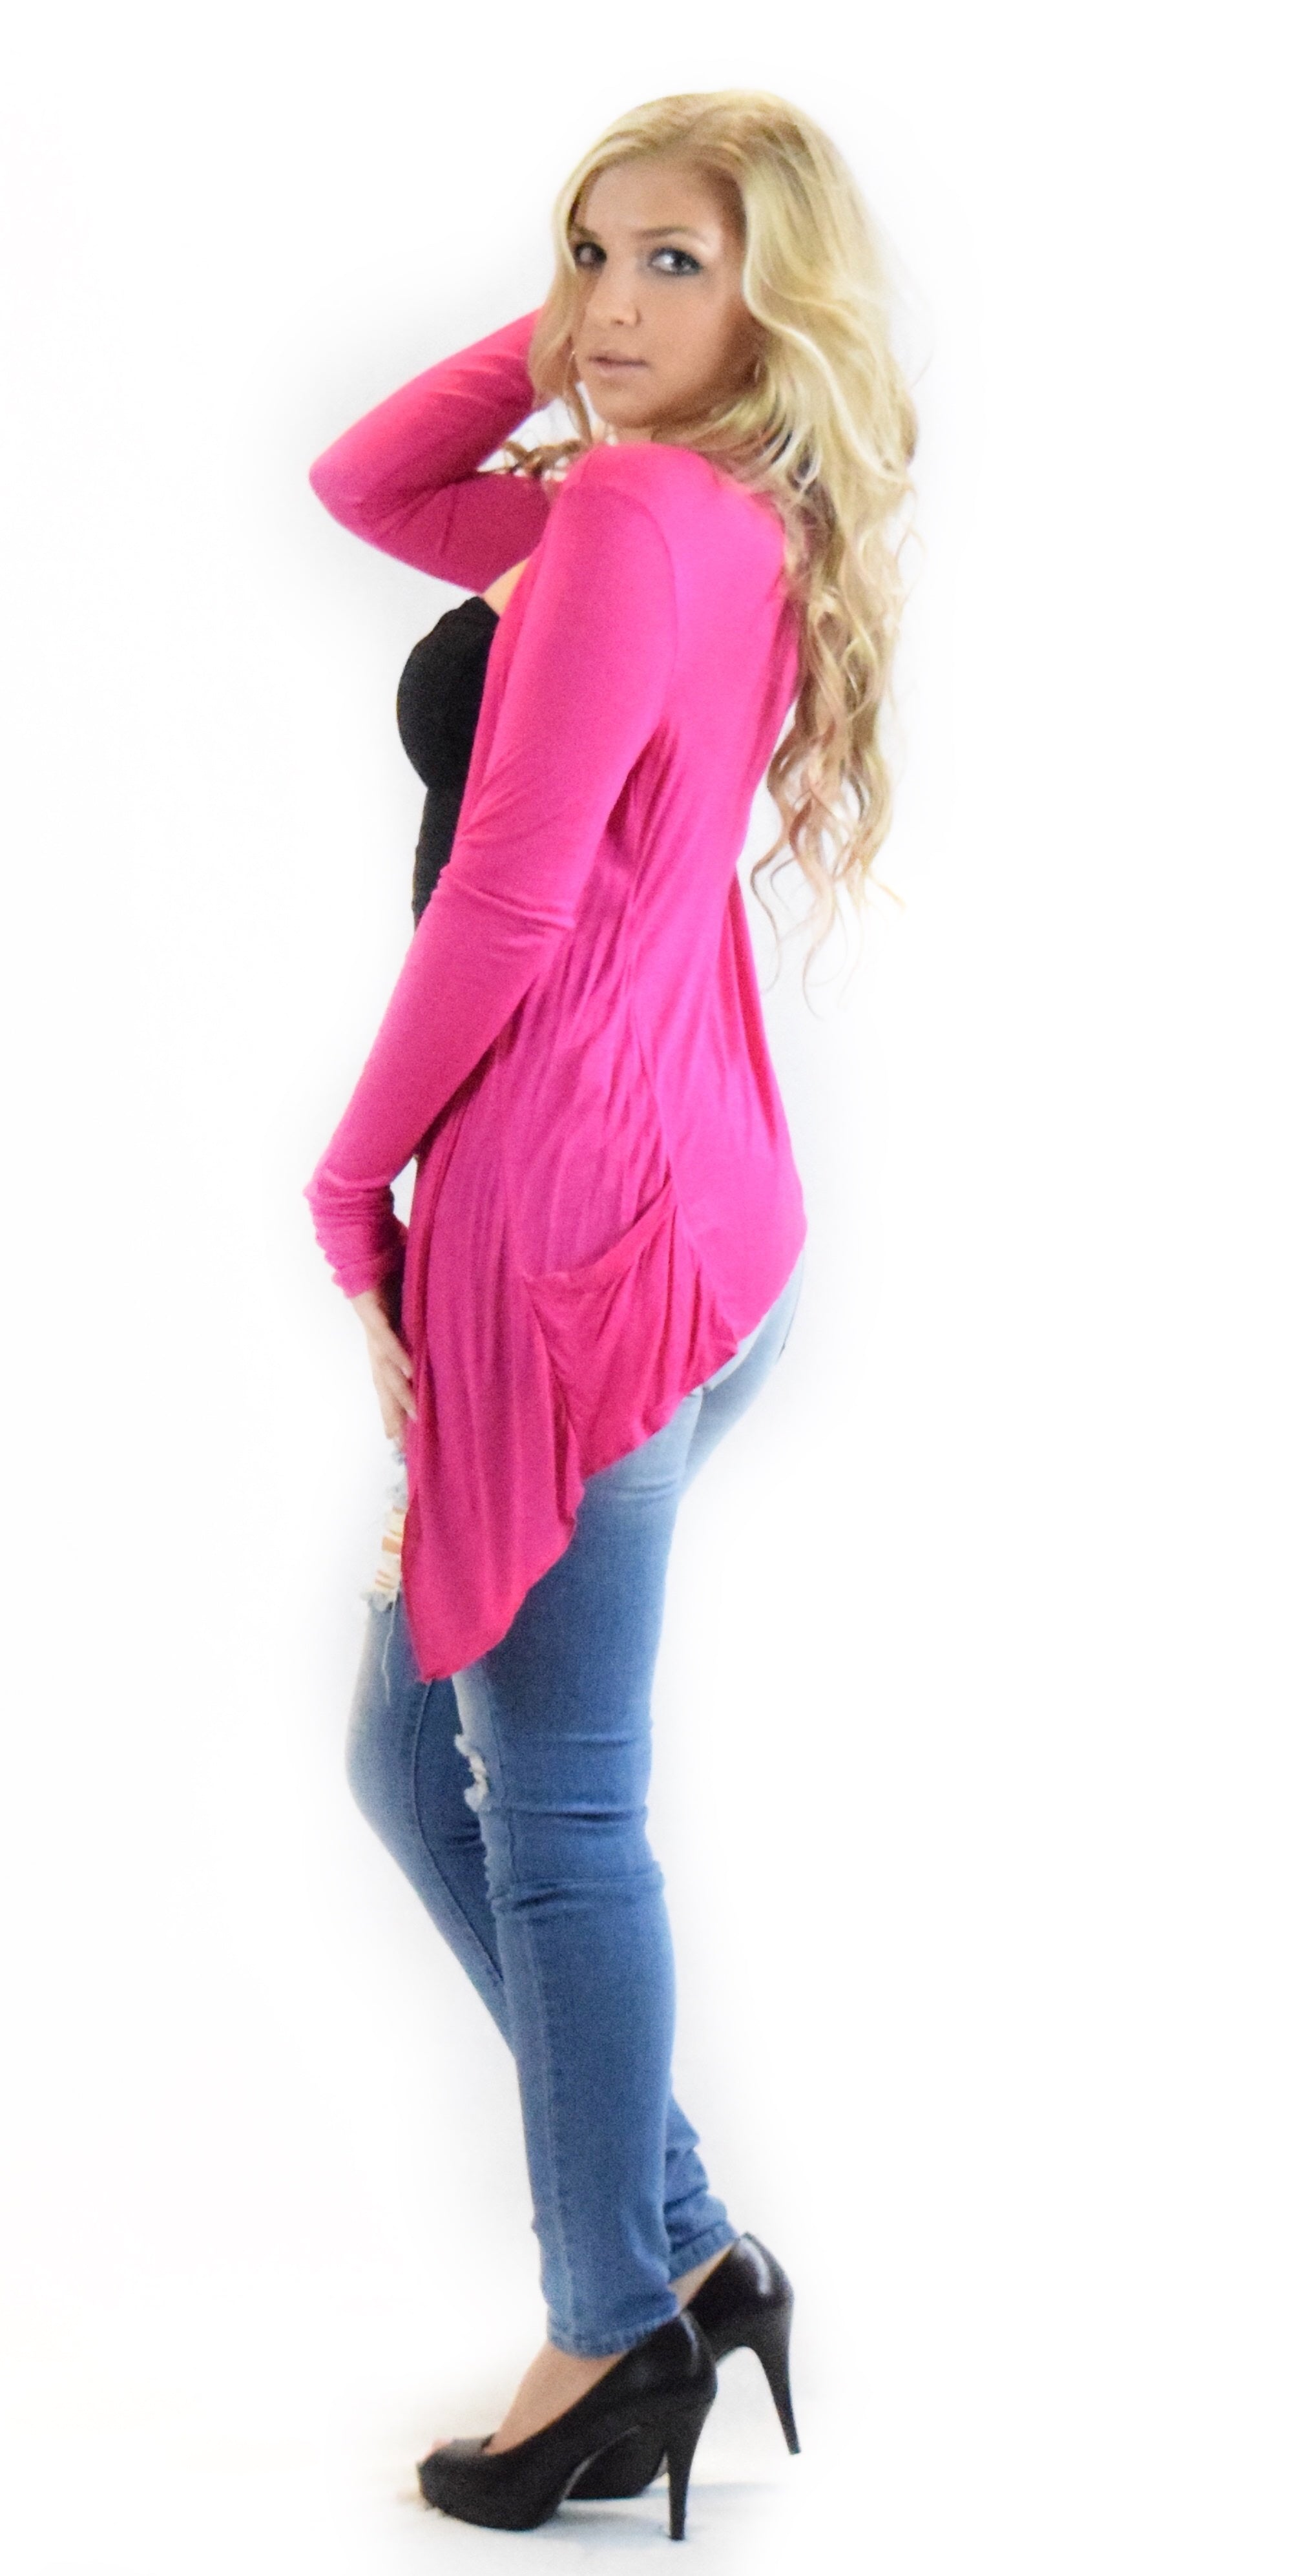 pink hot pink pocket jacket fashion clothing woman trending style clothes cardigan